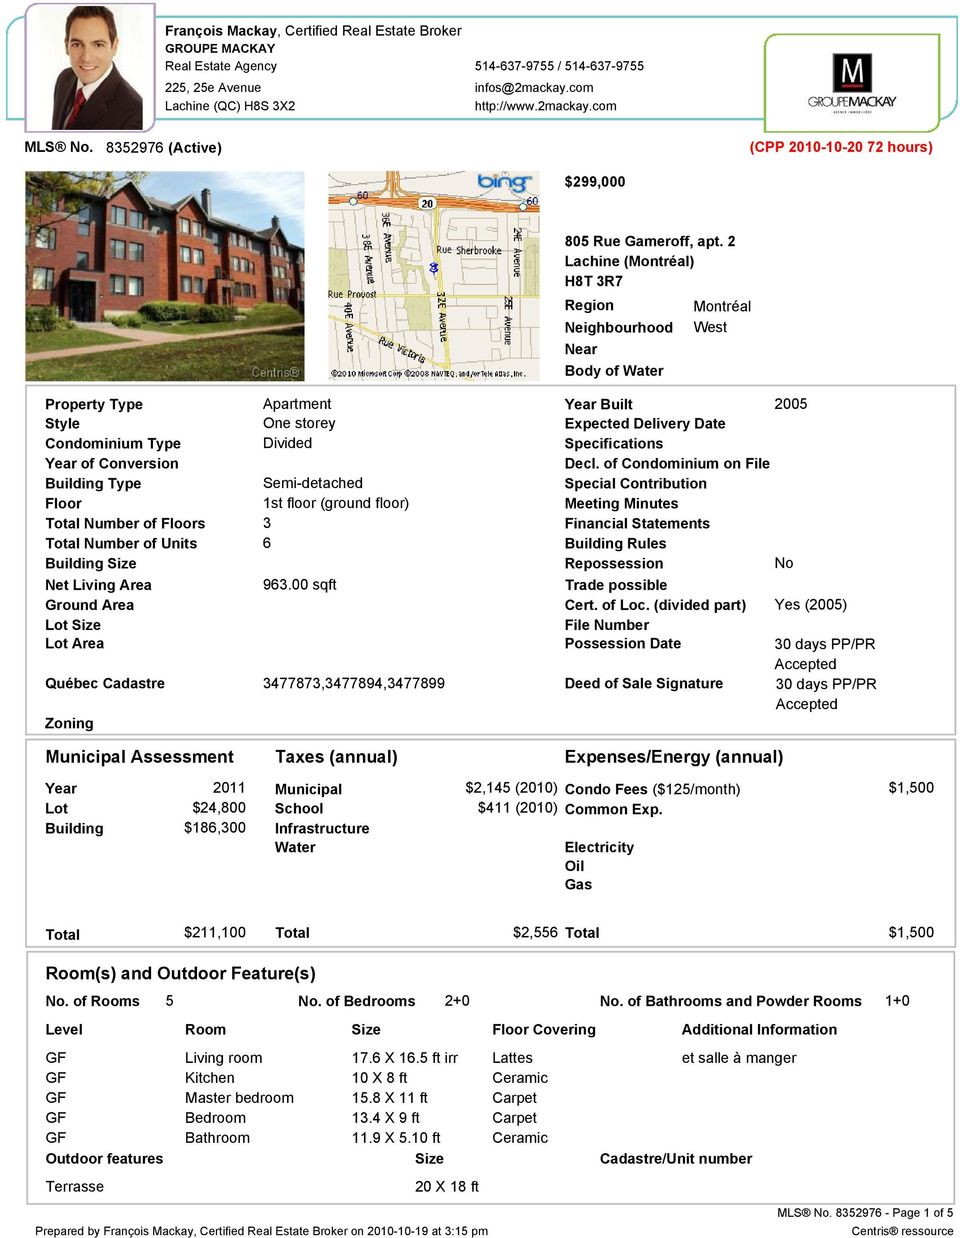 2 Lachine (Montréal) H8T 3R7 Region Neighbourhood Near Body of Water Property Type Apartment Year Built One storey Divided Style Condominium Type Year of Conversion Building Type Floor Total Number